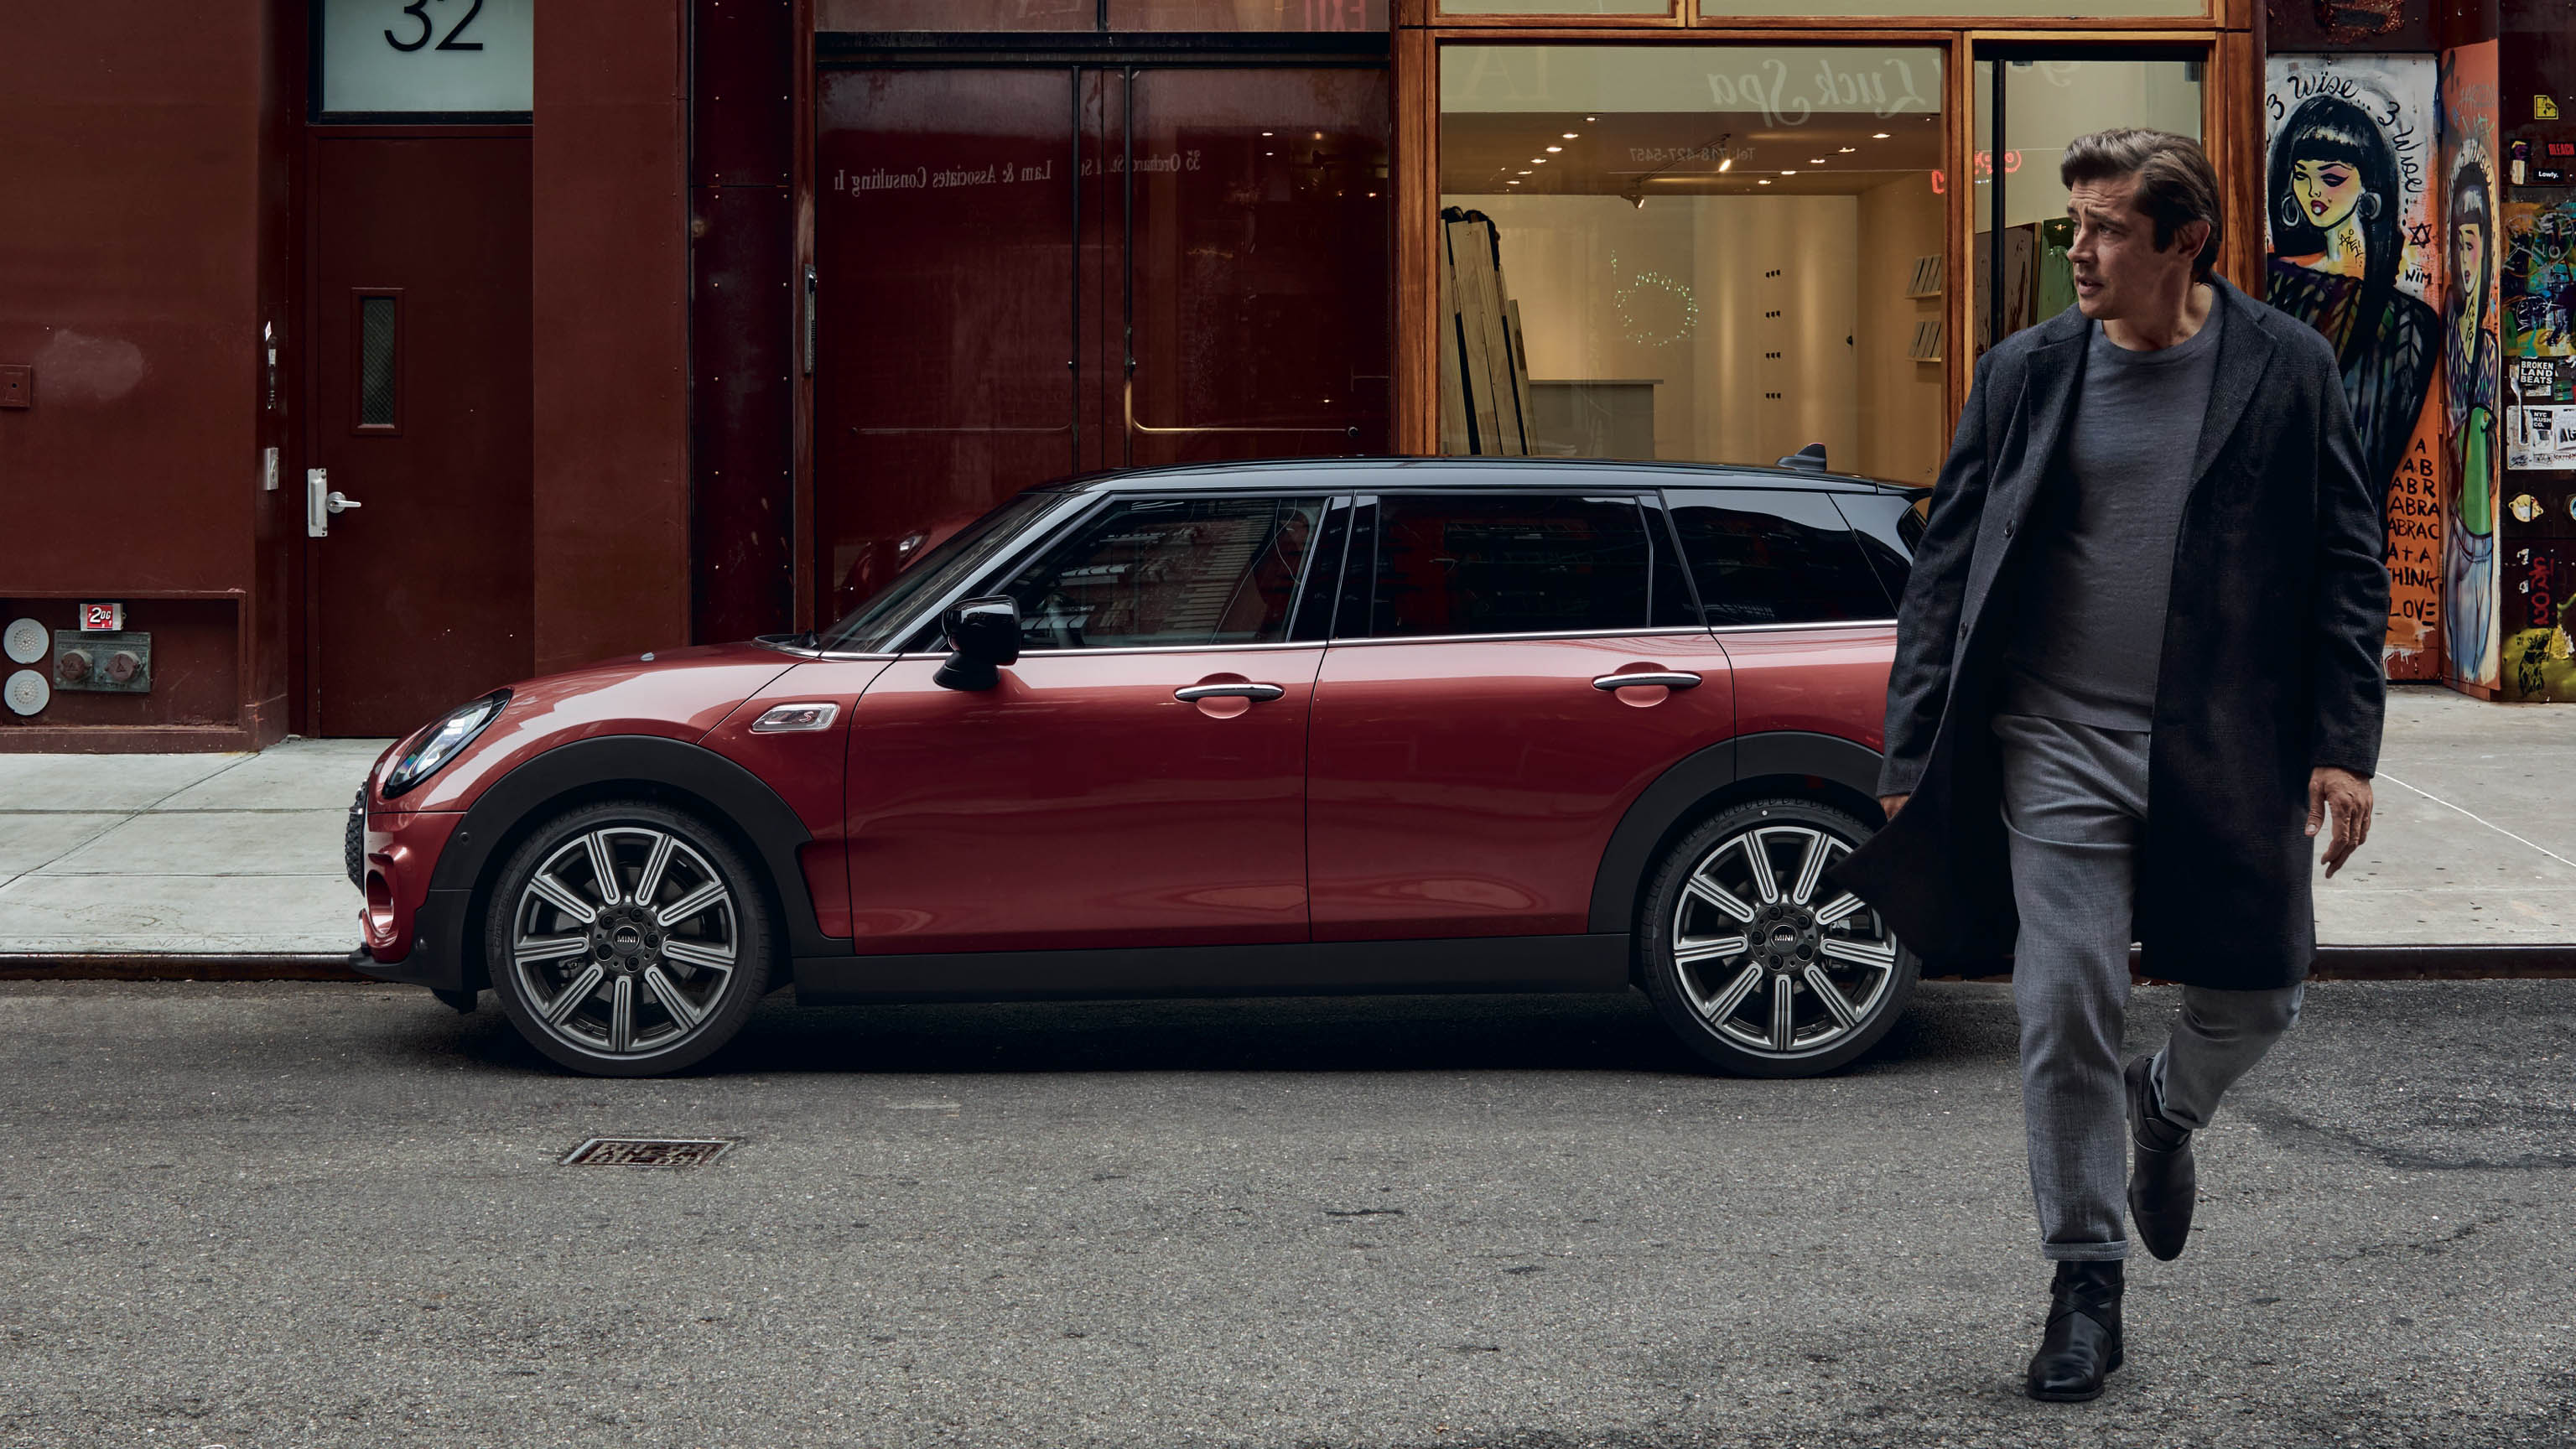 mini-clubman-gallery-side-view-wide